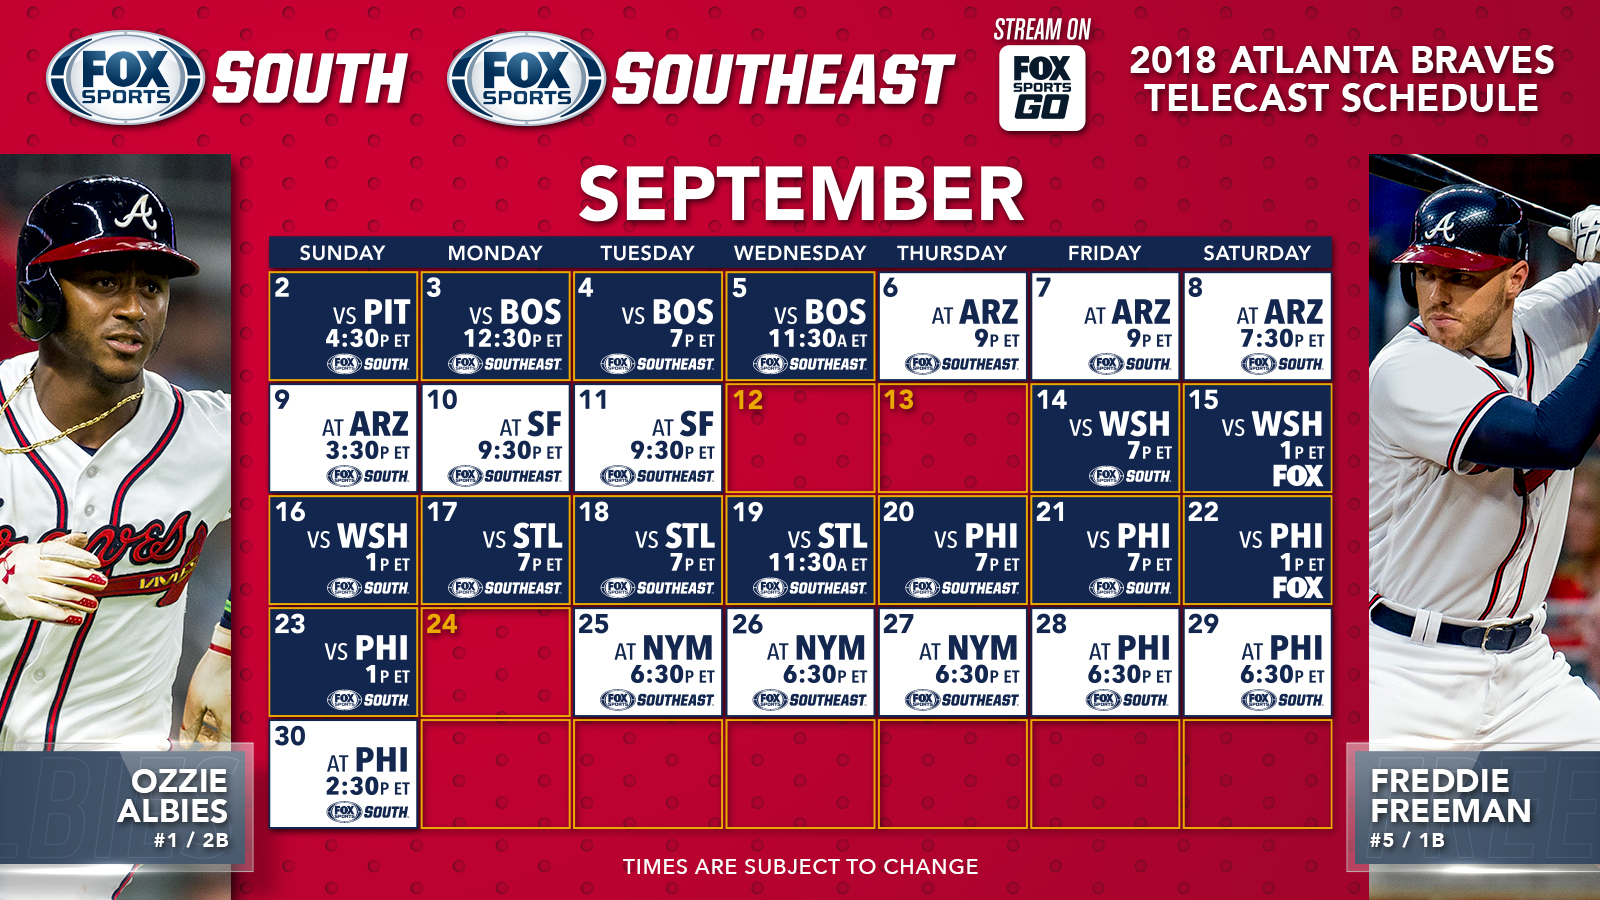 graphic regarding Atlanta Braves Tv Schedule Printable identified as Atlanta Braves Television Agenda Illustrations and Kinds